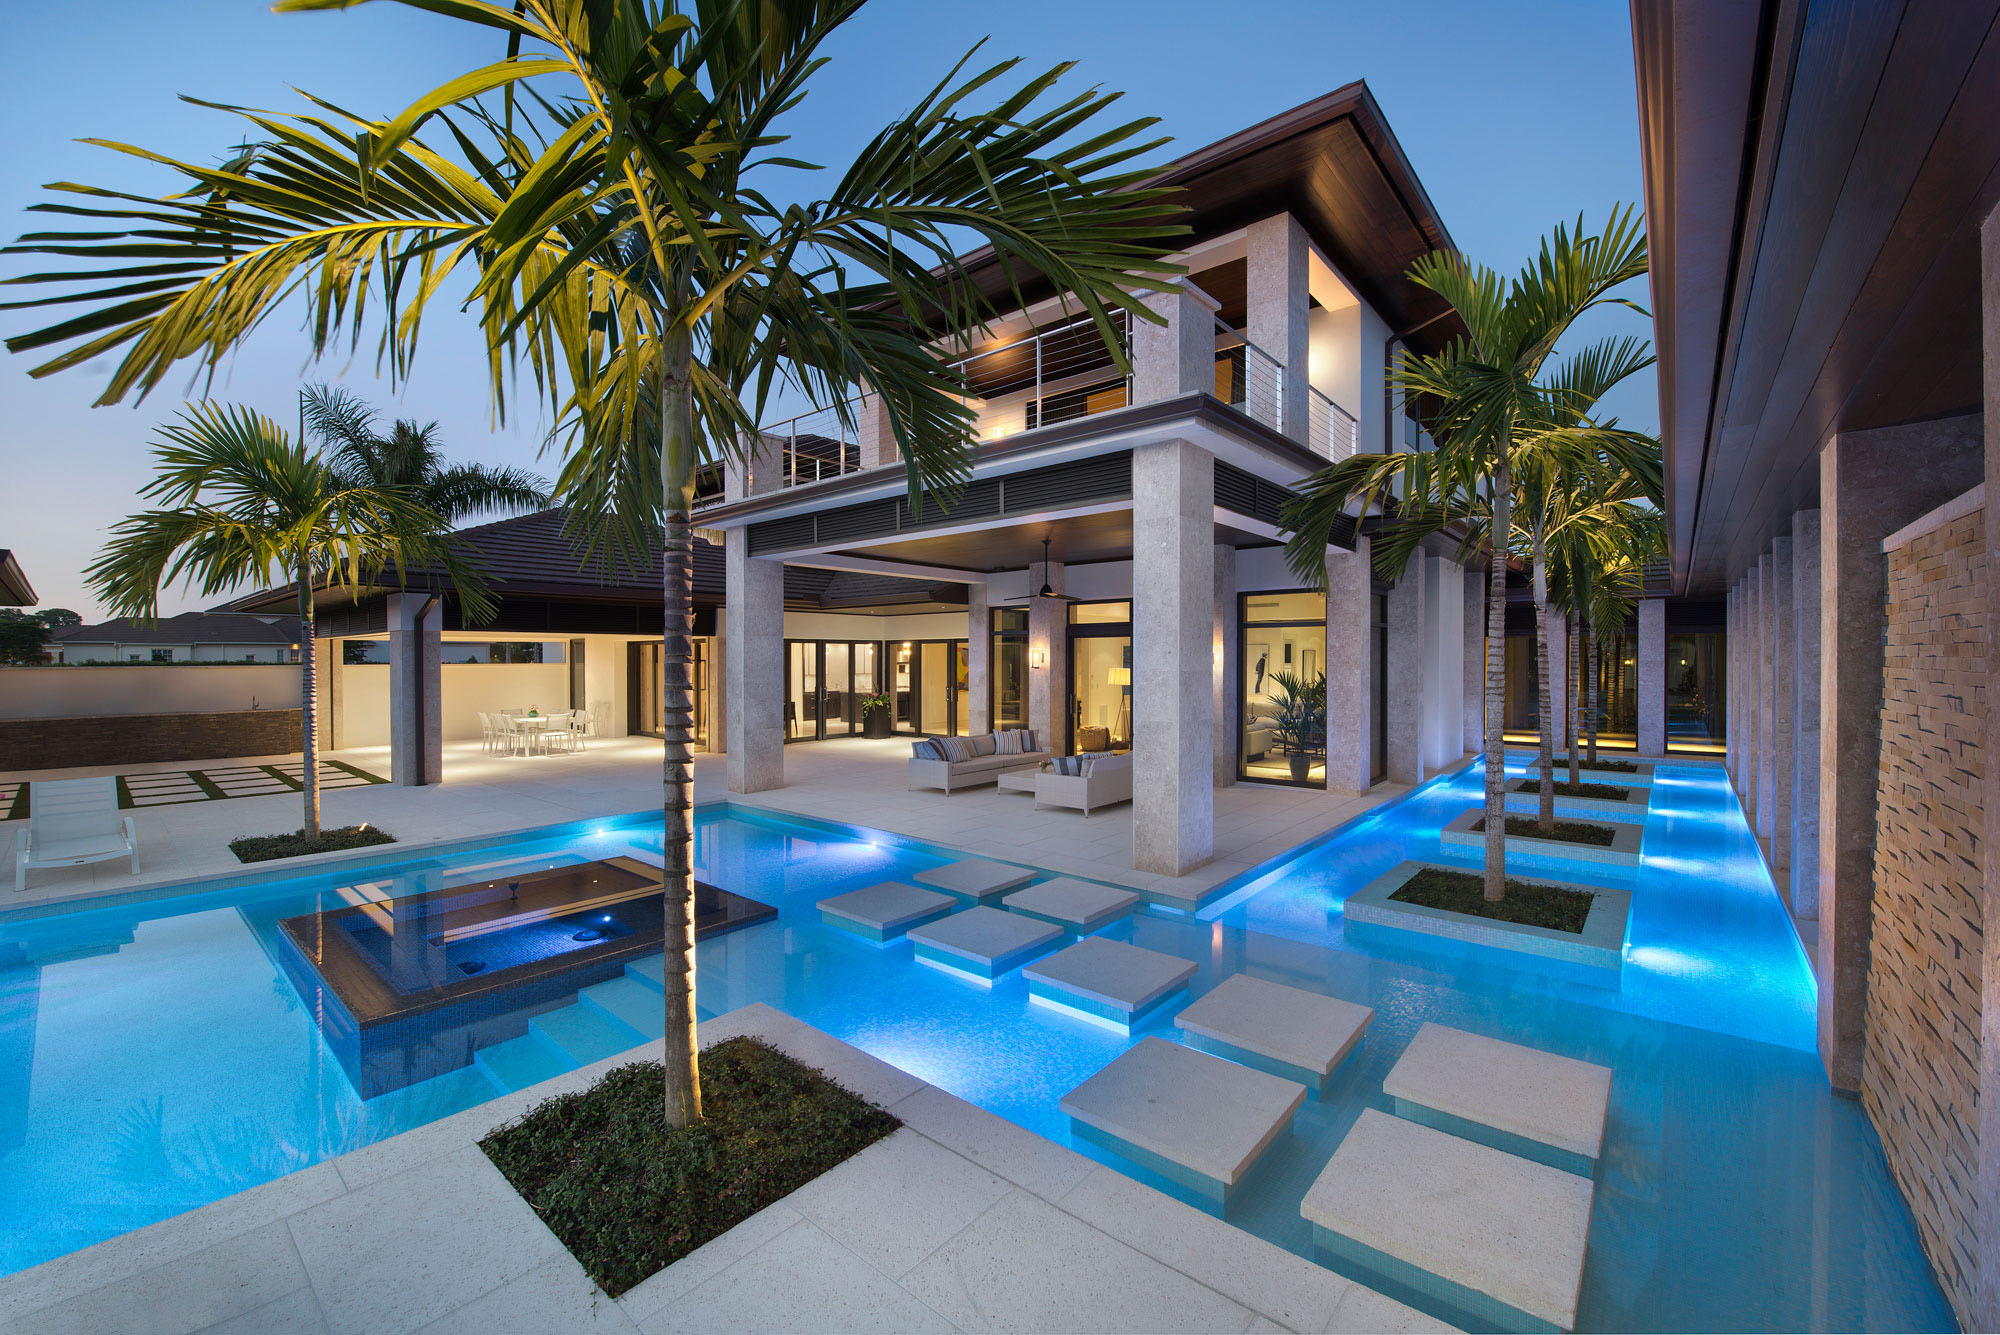 Custom dream home in florida with elegant swimming pool for Luxury modern home builders